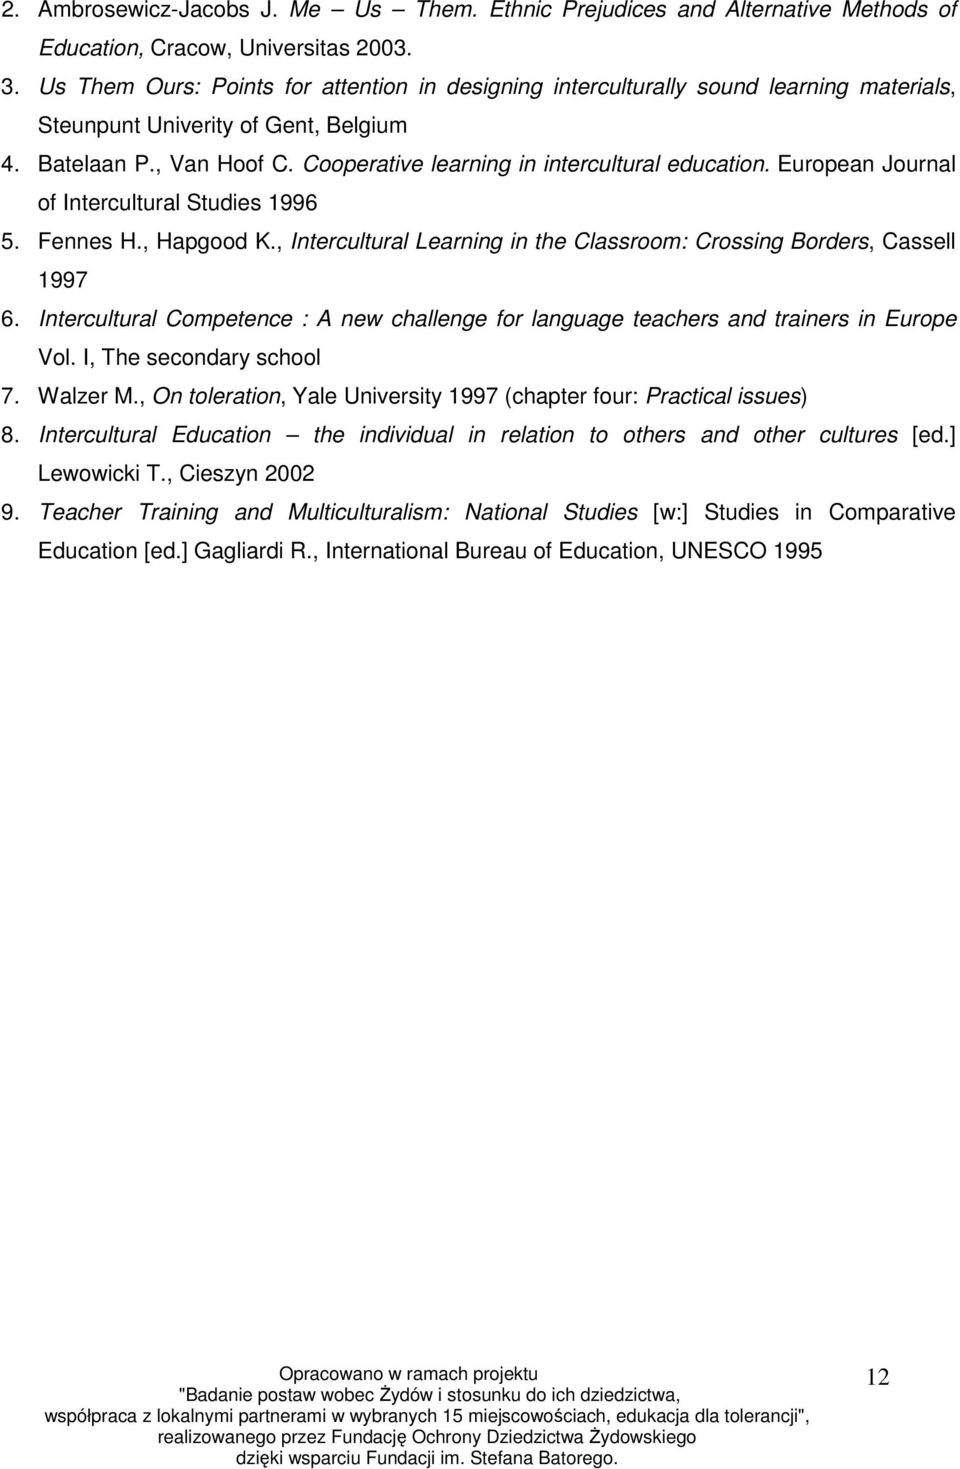 Cooperative learning in intercultural education. European Journal of Intercultural Studies 1996 5. Fennes H., Hapgood K., Intercultural Learning in the Classroom: Crossing Borders, Cassell 1997 6.